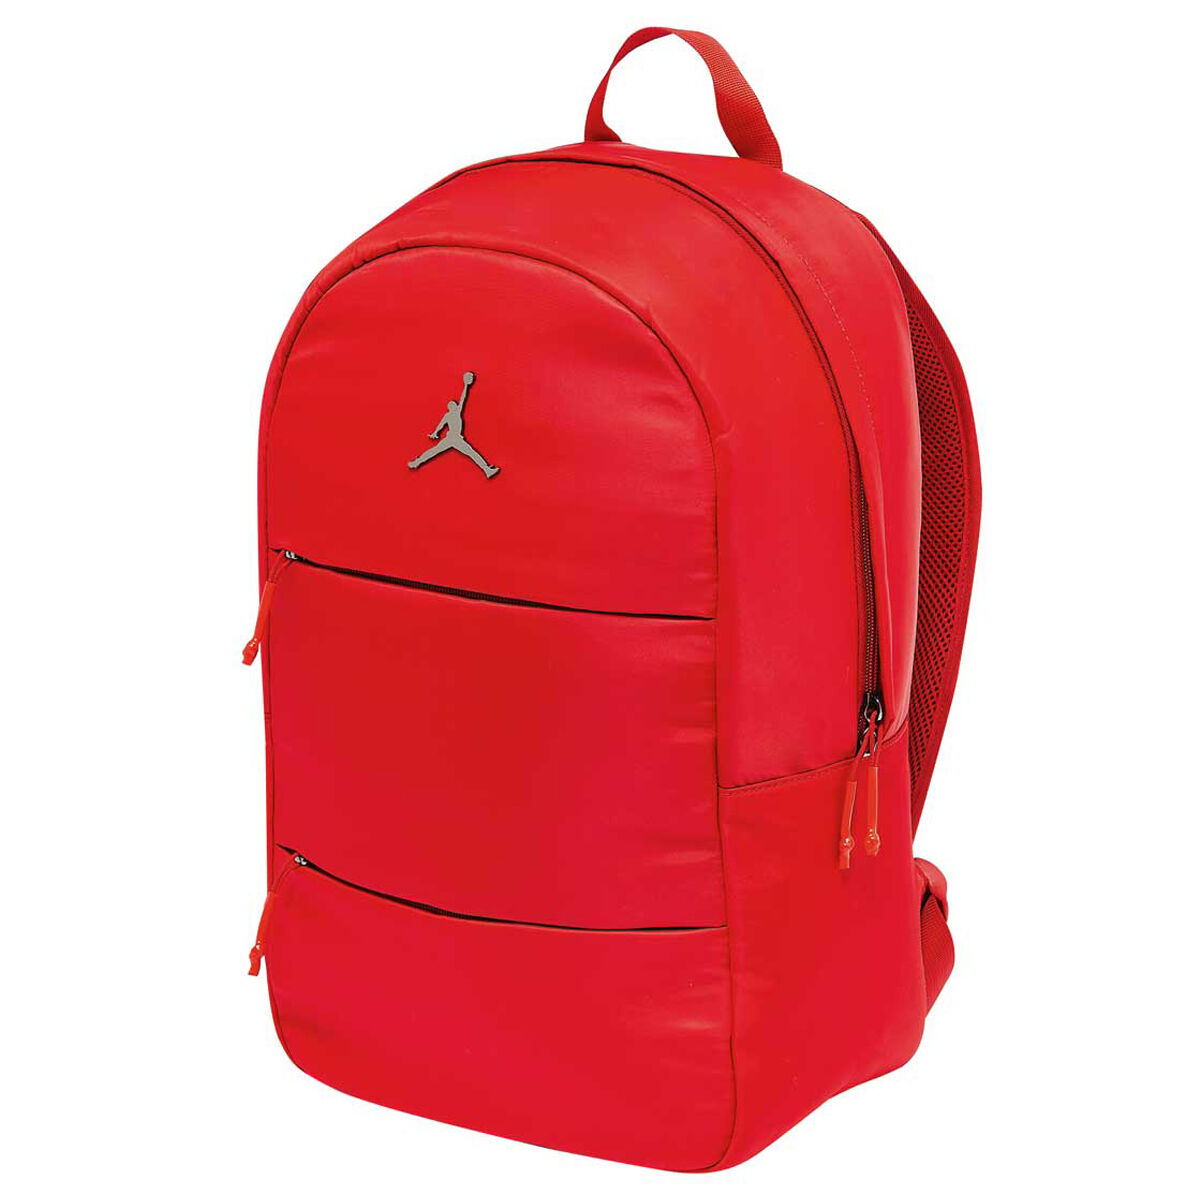 Buy red jordan backpack   up to 71% Discounts a7e84d9cc476c